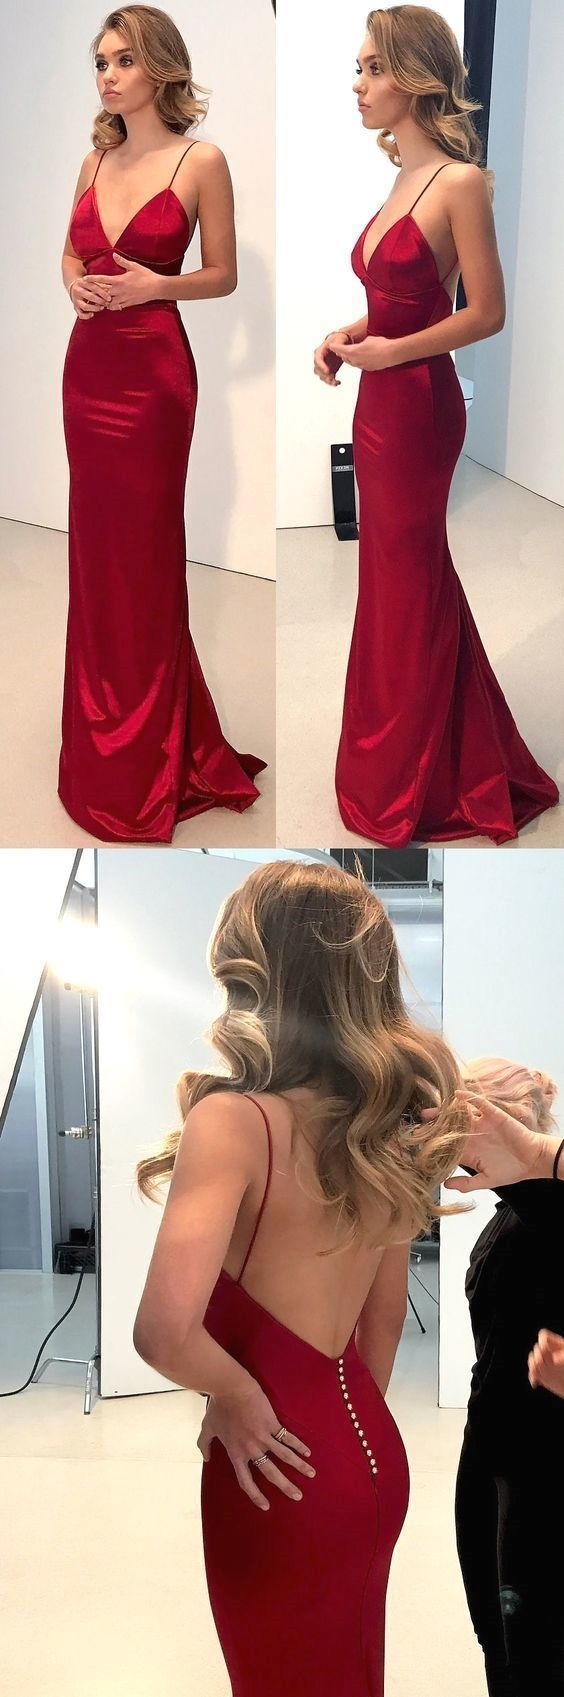 Sexy Straps Backless Red Prom Dress, Sexy Mermaid Prom Dresses, V Neck Party